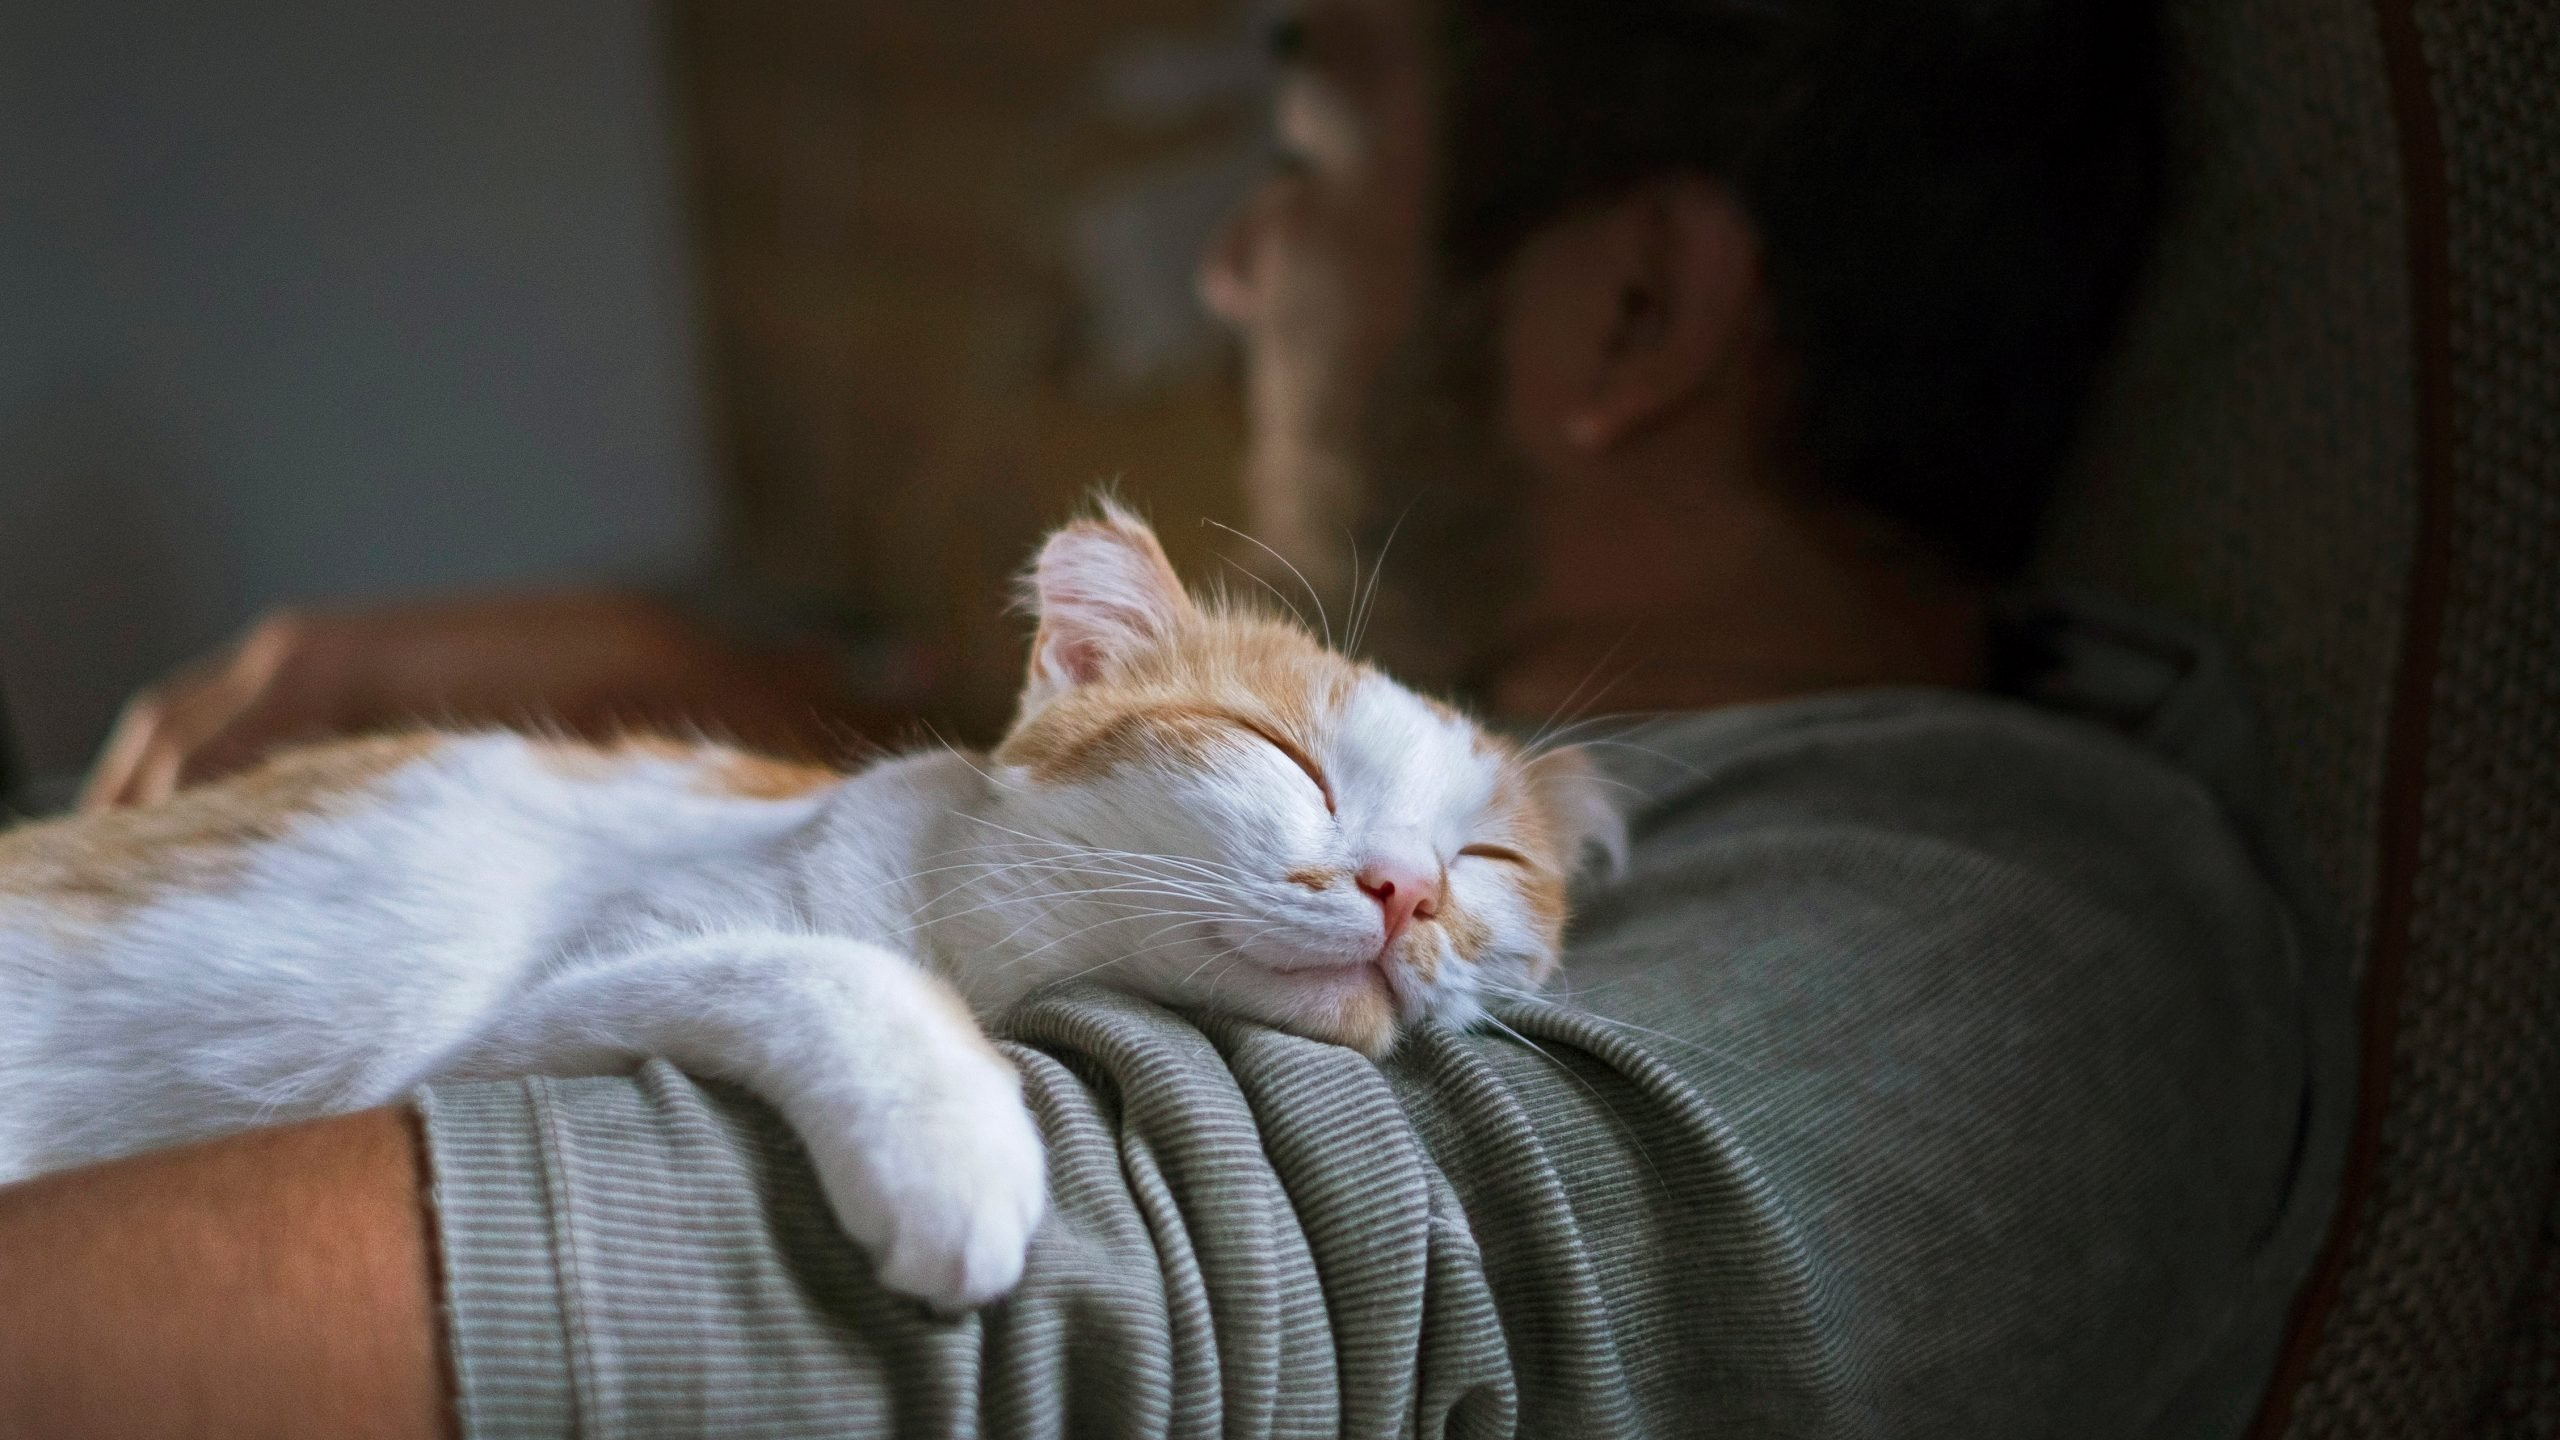 cat sleeping on man's arm